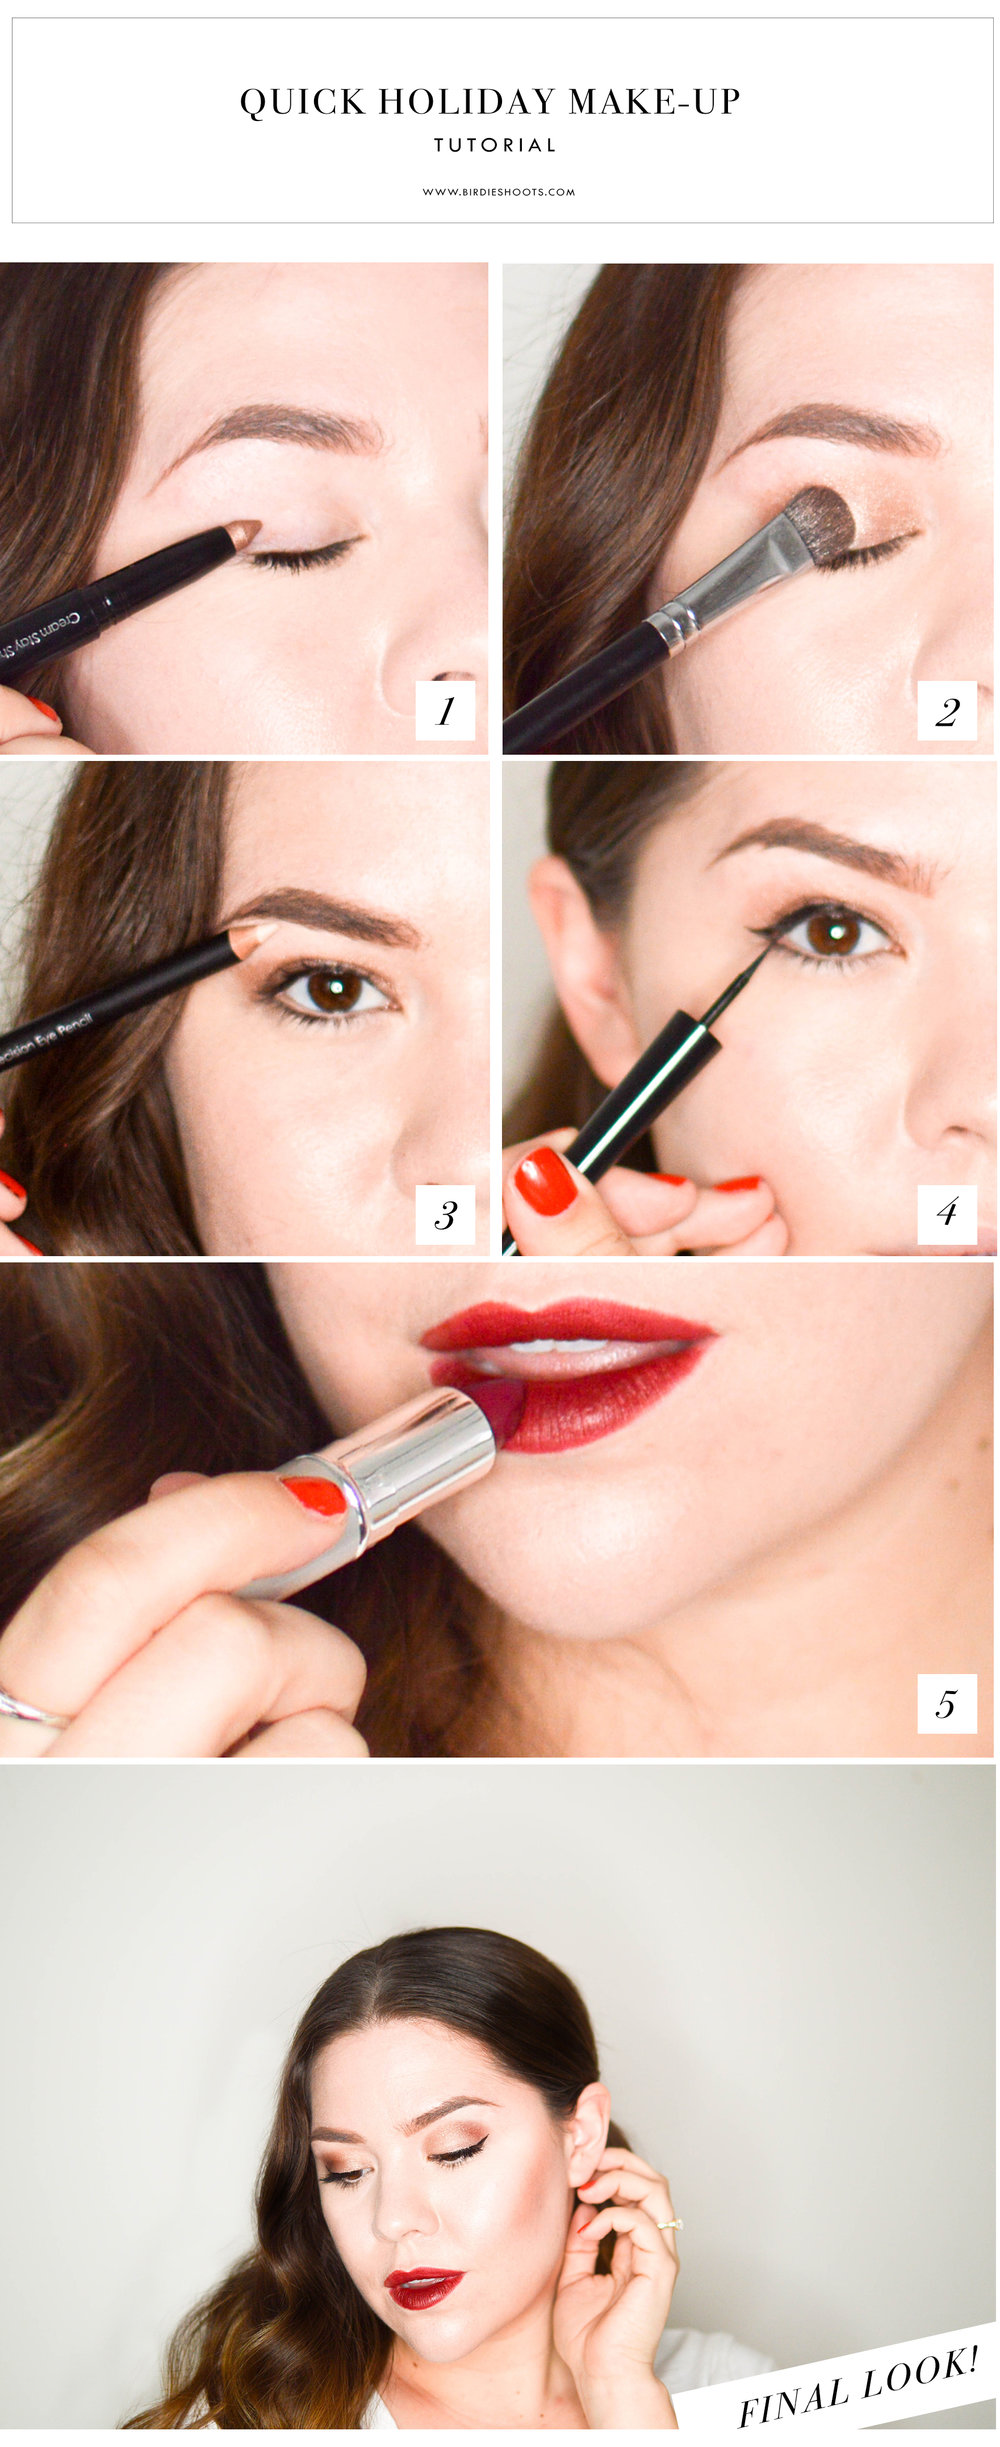 Quick Holiday Makeup Tutorial via. www.birdieshoots.com